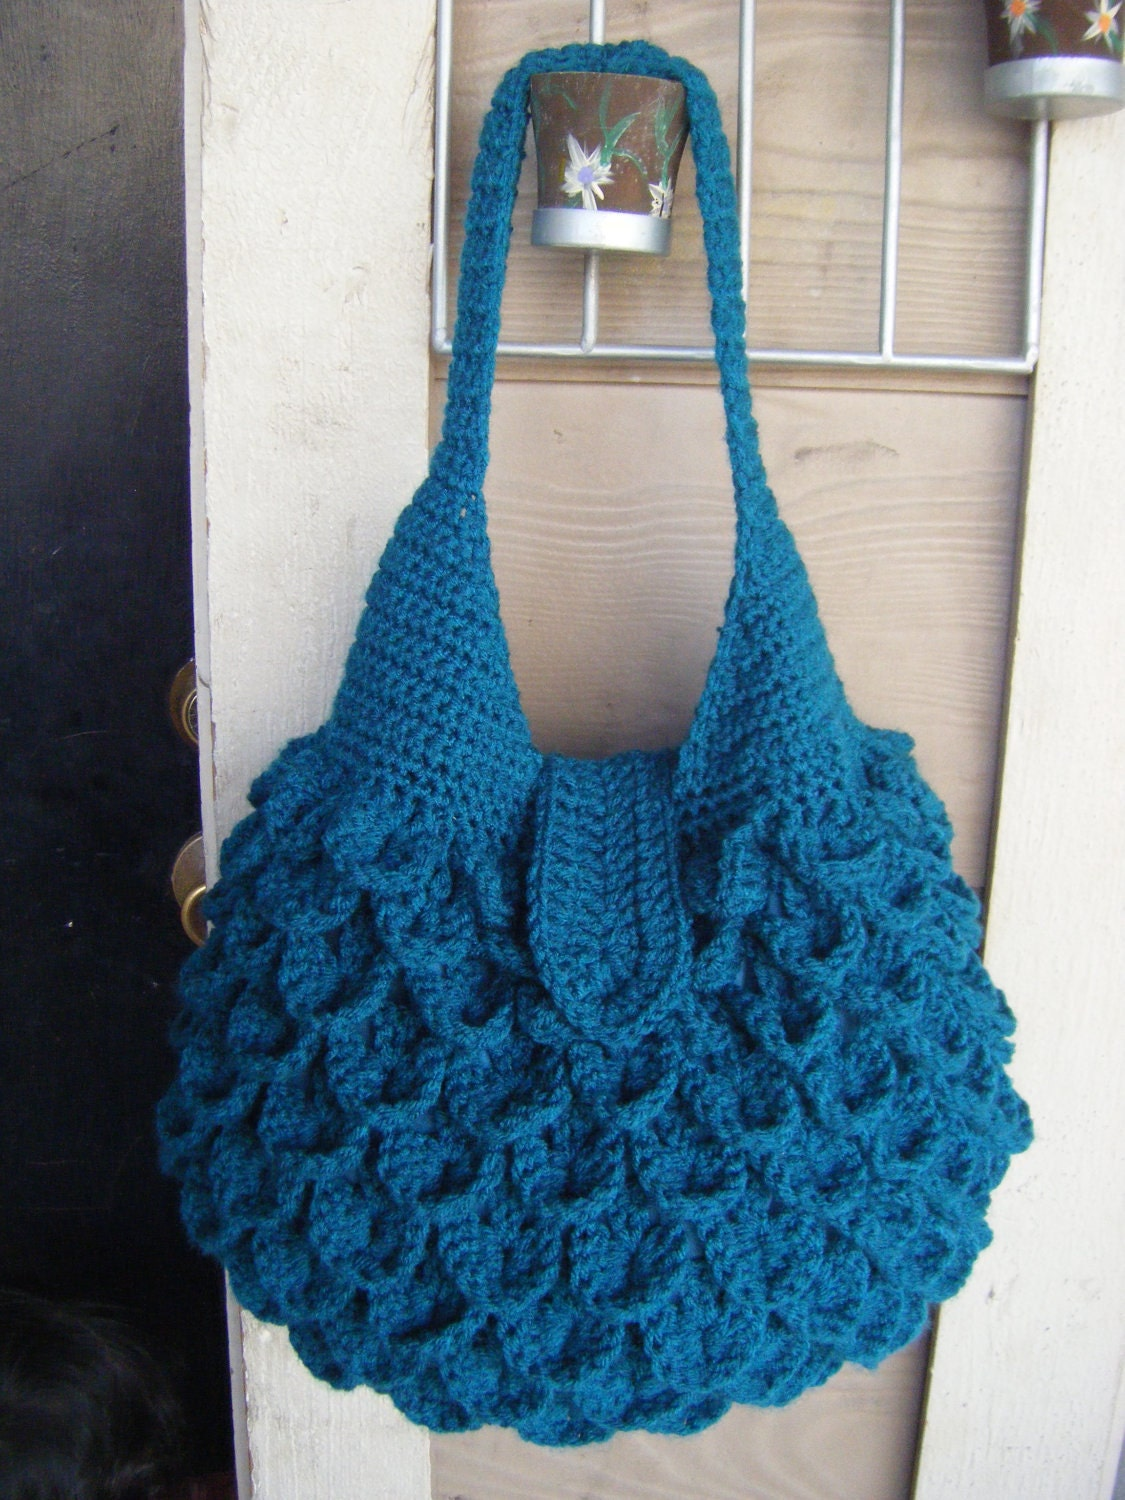 Crochet Backpack : Crochet Crocodile Bag Pattern PERMISSION SELL by NatalieSpot